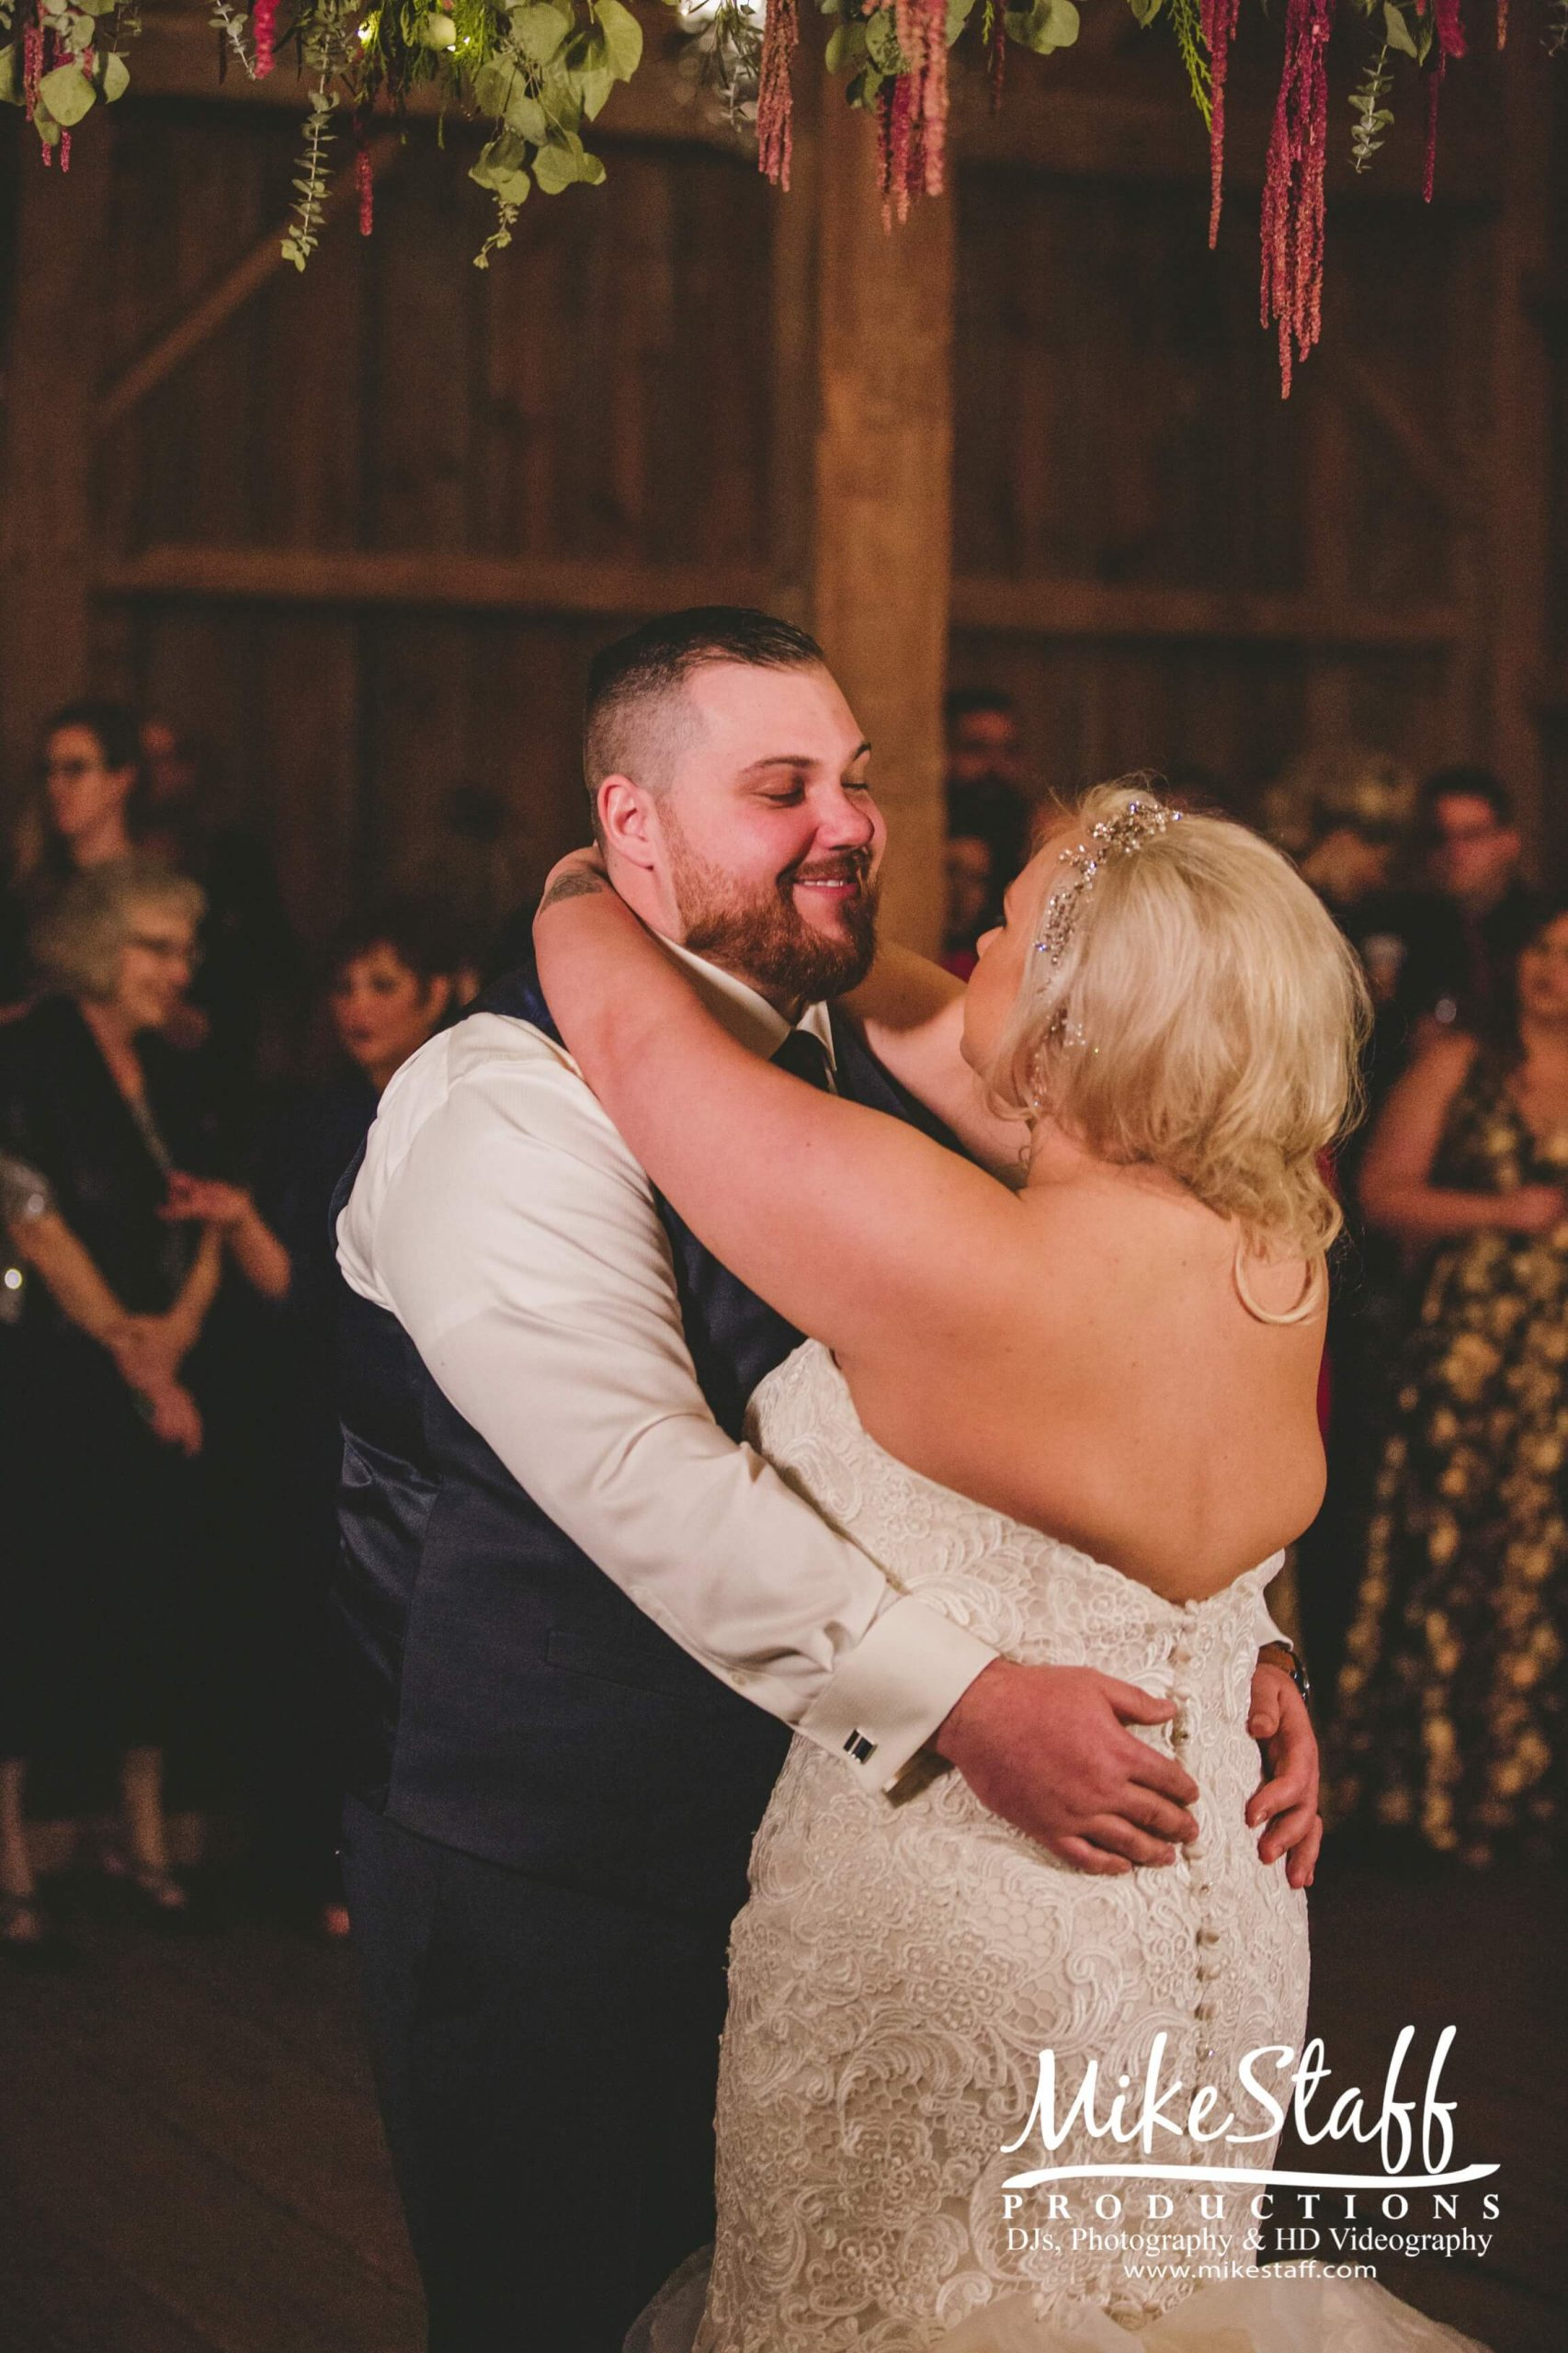 bride and groom's first dance at barn wedding reception